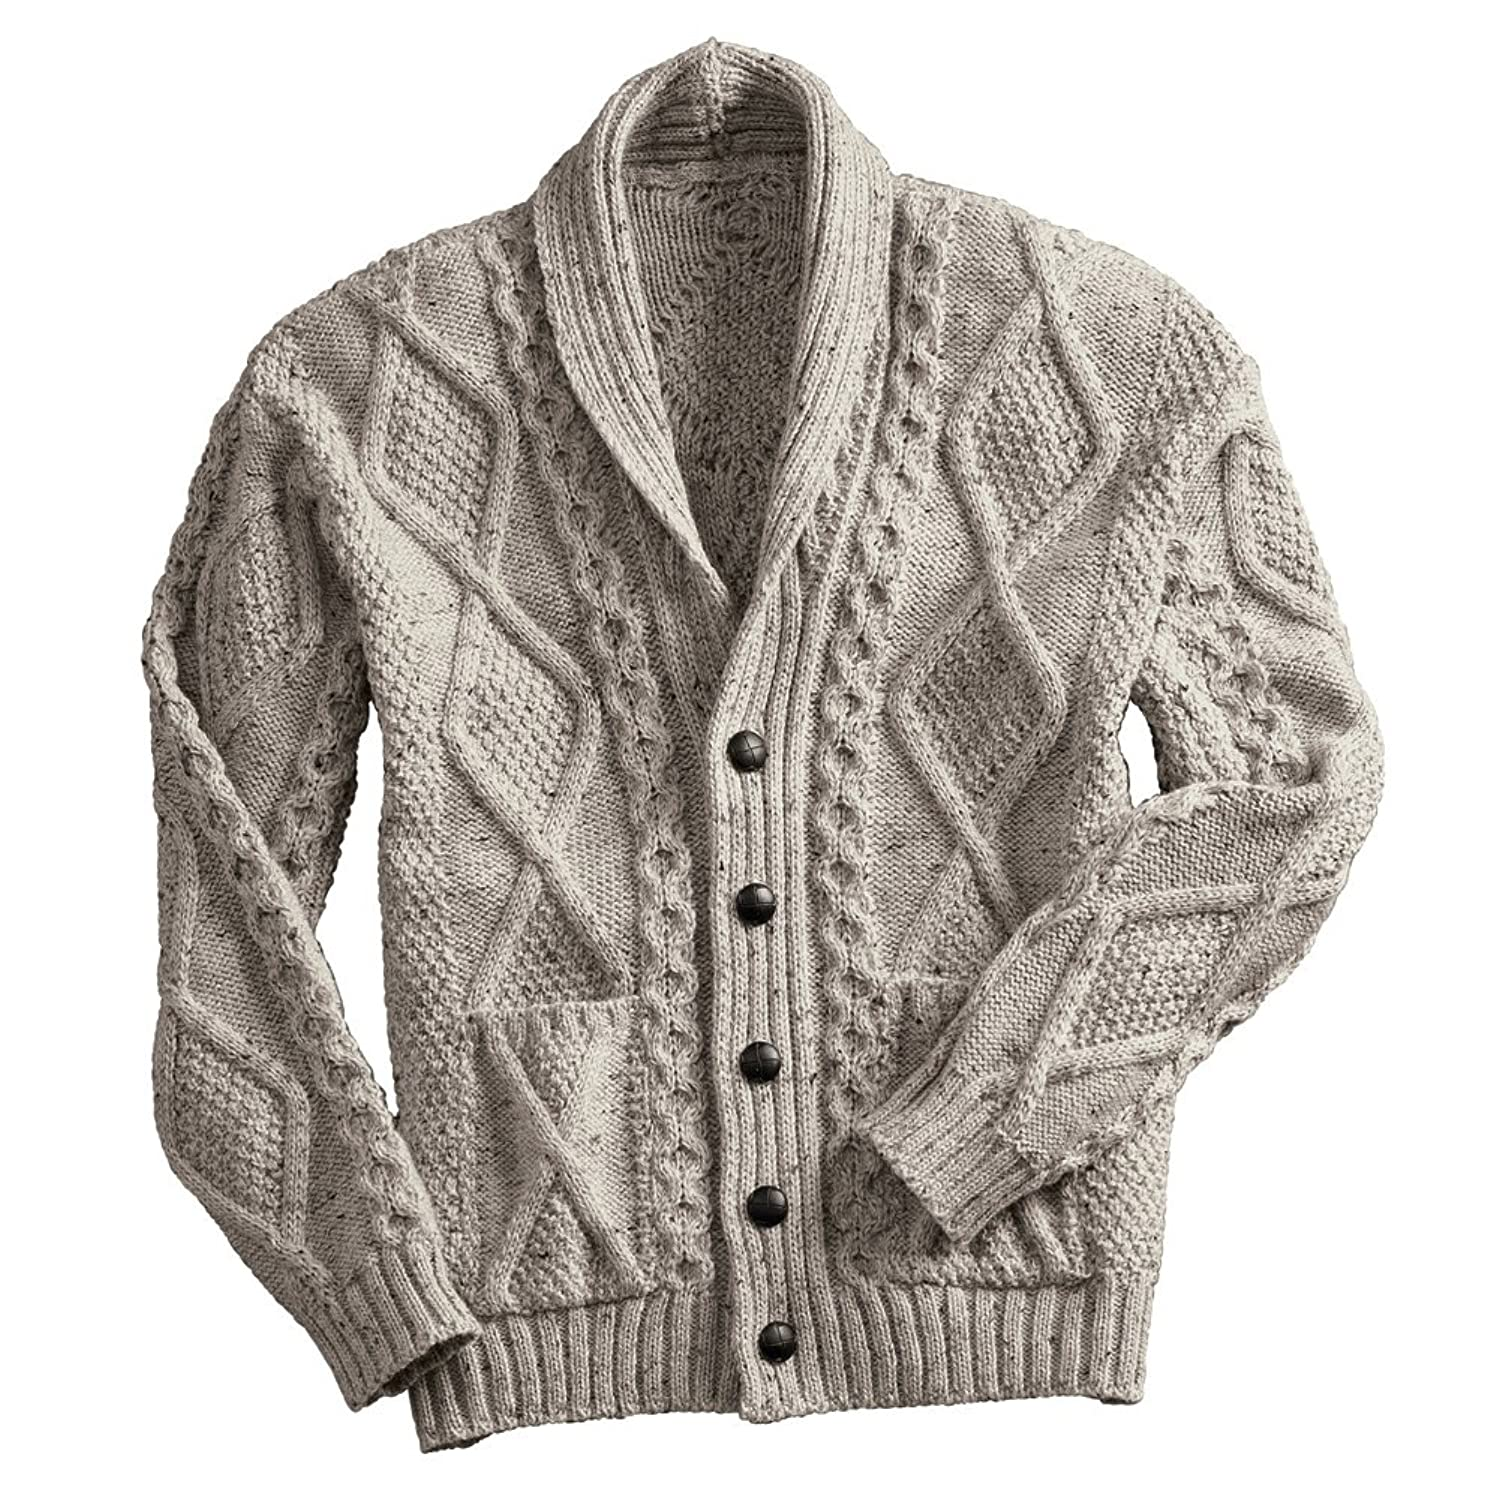 Unisex-Adult Aran Shawl Collar Cable Knit Cardigan Sweater at ...